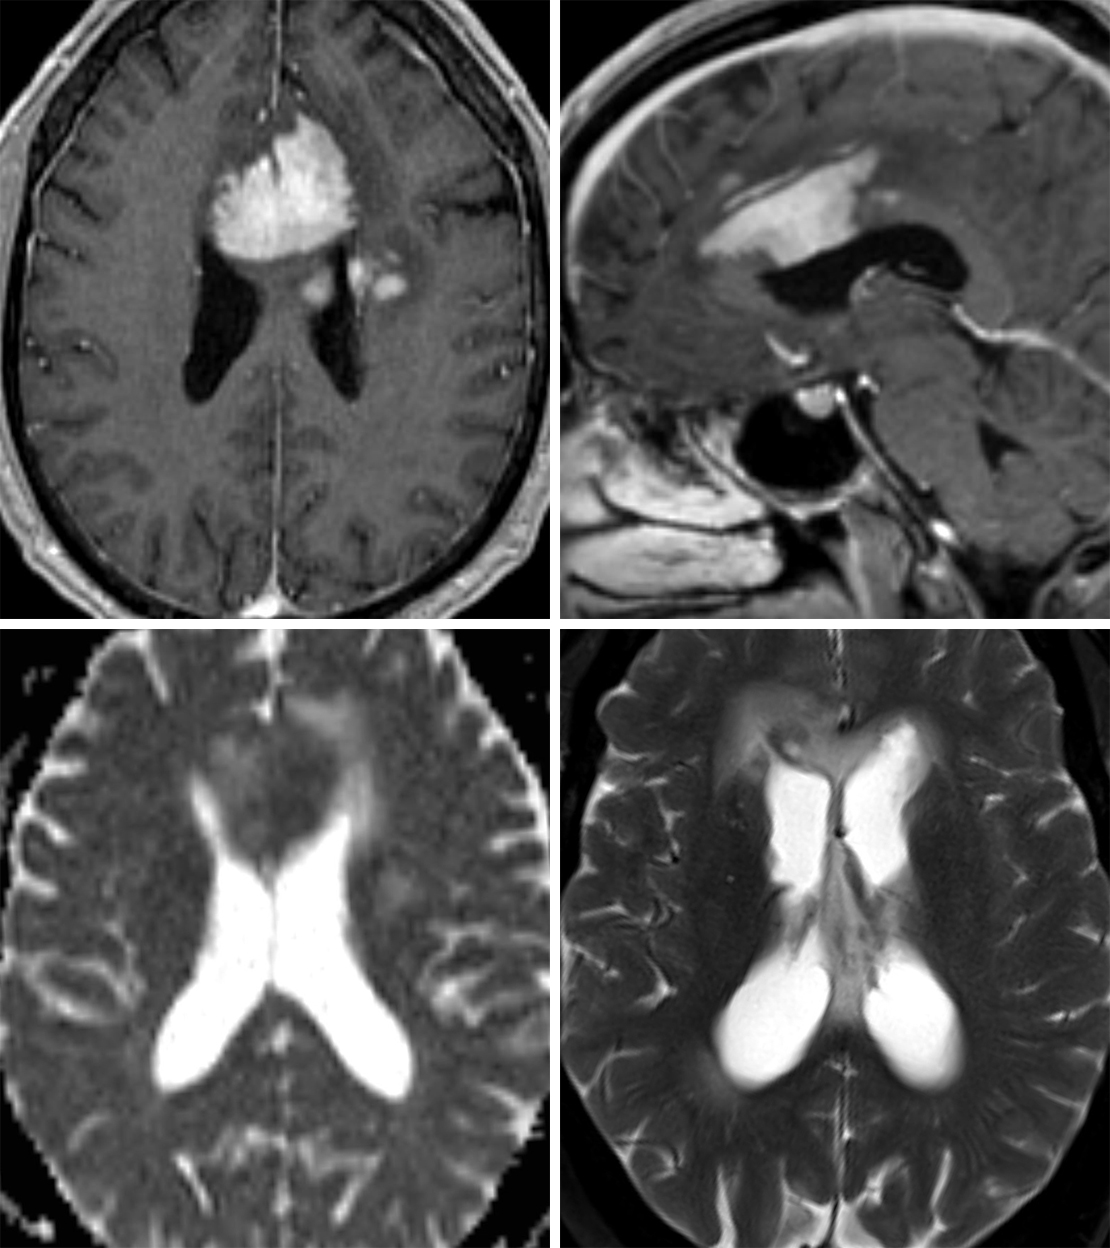 Figure 1: The patchy and solid enhancement of lymphoma on postcontrast T1WI (top row left, top row right) and abutment of an ependymal surface is typical in immunocompetent patients. This lymphoma crosses the midline through the anterior body of the corpus callosum. Low T2 (bottom row right) and ADC (bottom row left) signal indicate hypercellularity. This lymphoma is also inciting a moderate amount of T2-hyperintense surrounding vasogenic edema.